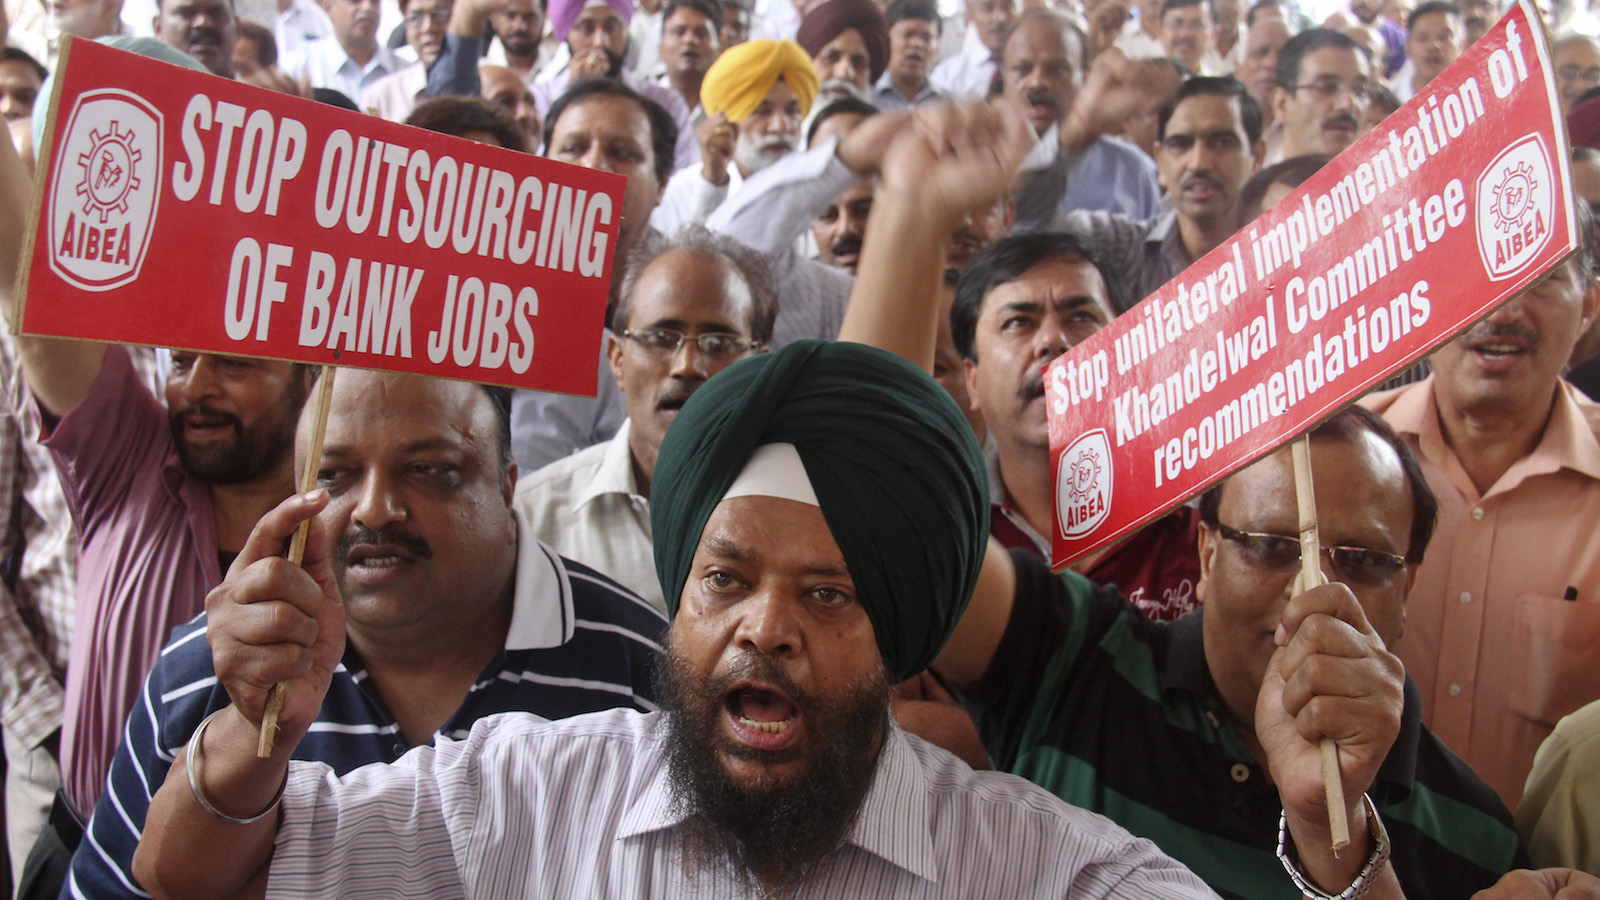 A bank employee shouts slogans while holding placards at a rally during a two-day strike in the northern Indian city of Chandigarh August 22, 2012